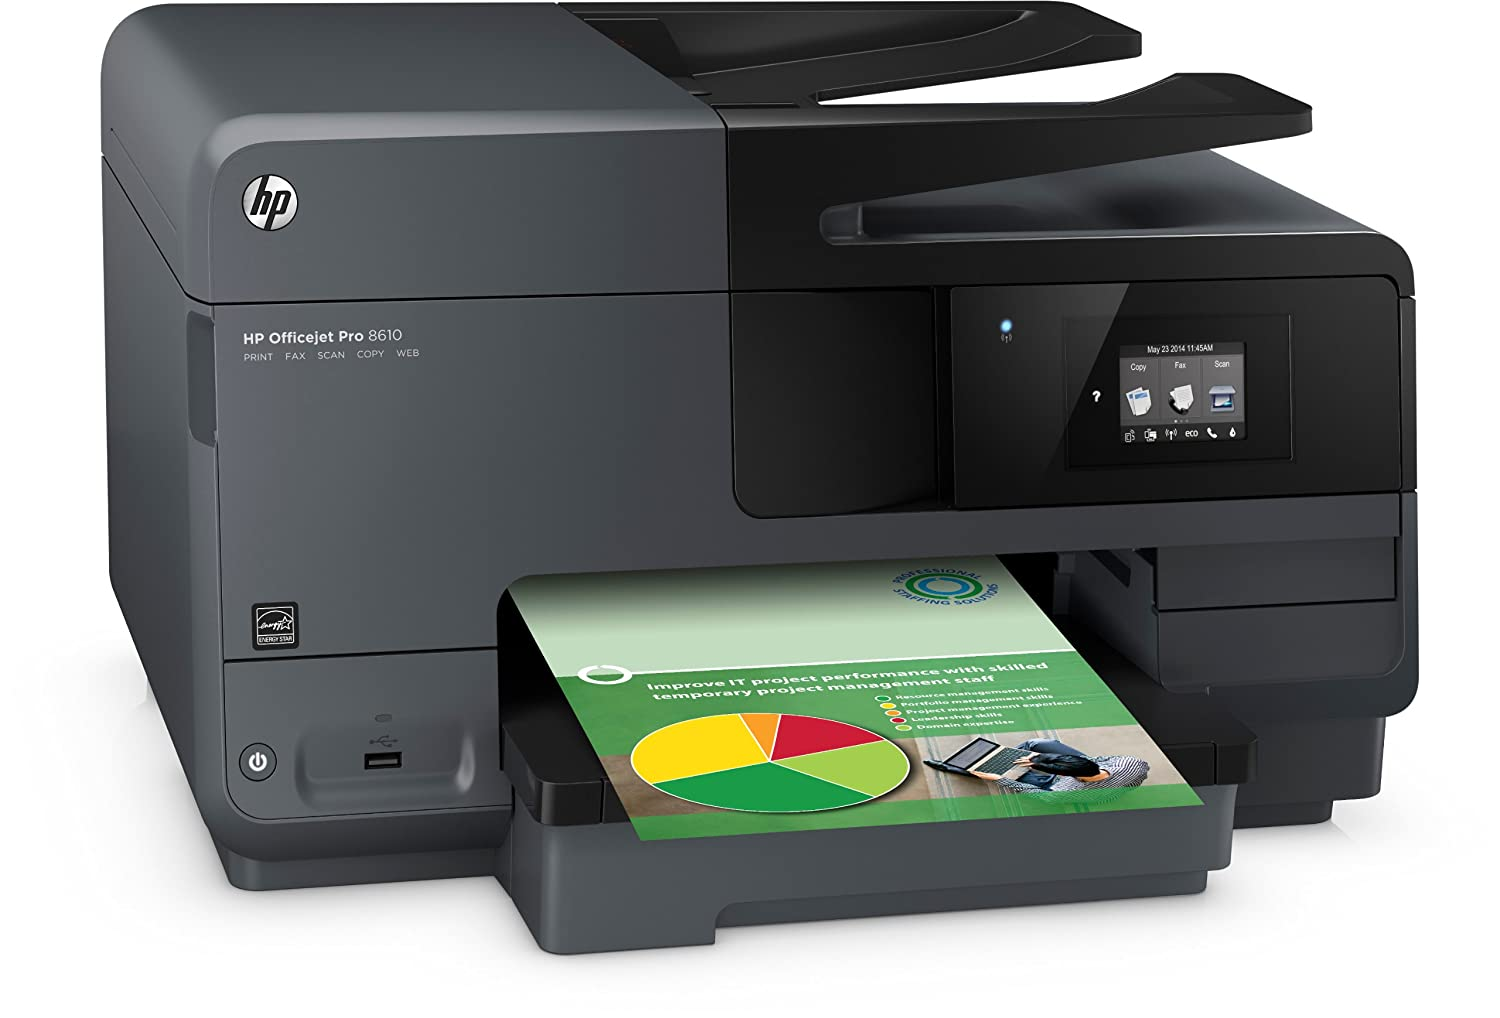 HP Officejet Pro 8610 e-All-in-One Tintenstrahl